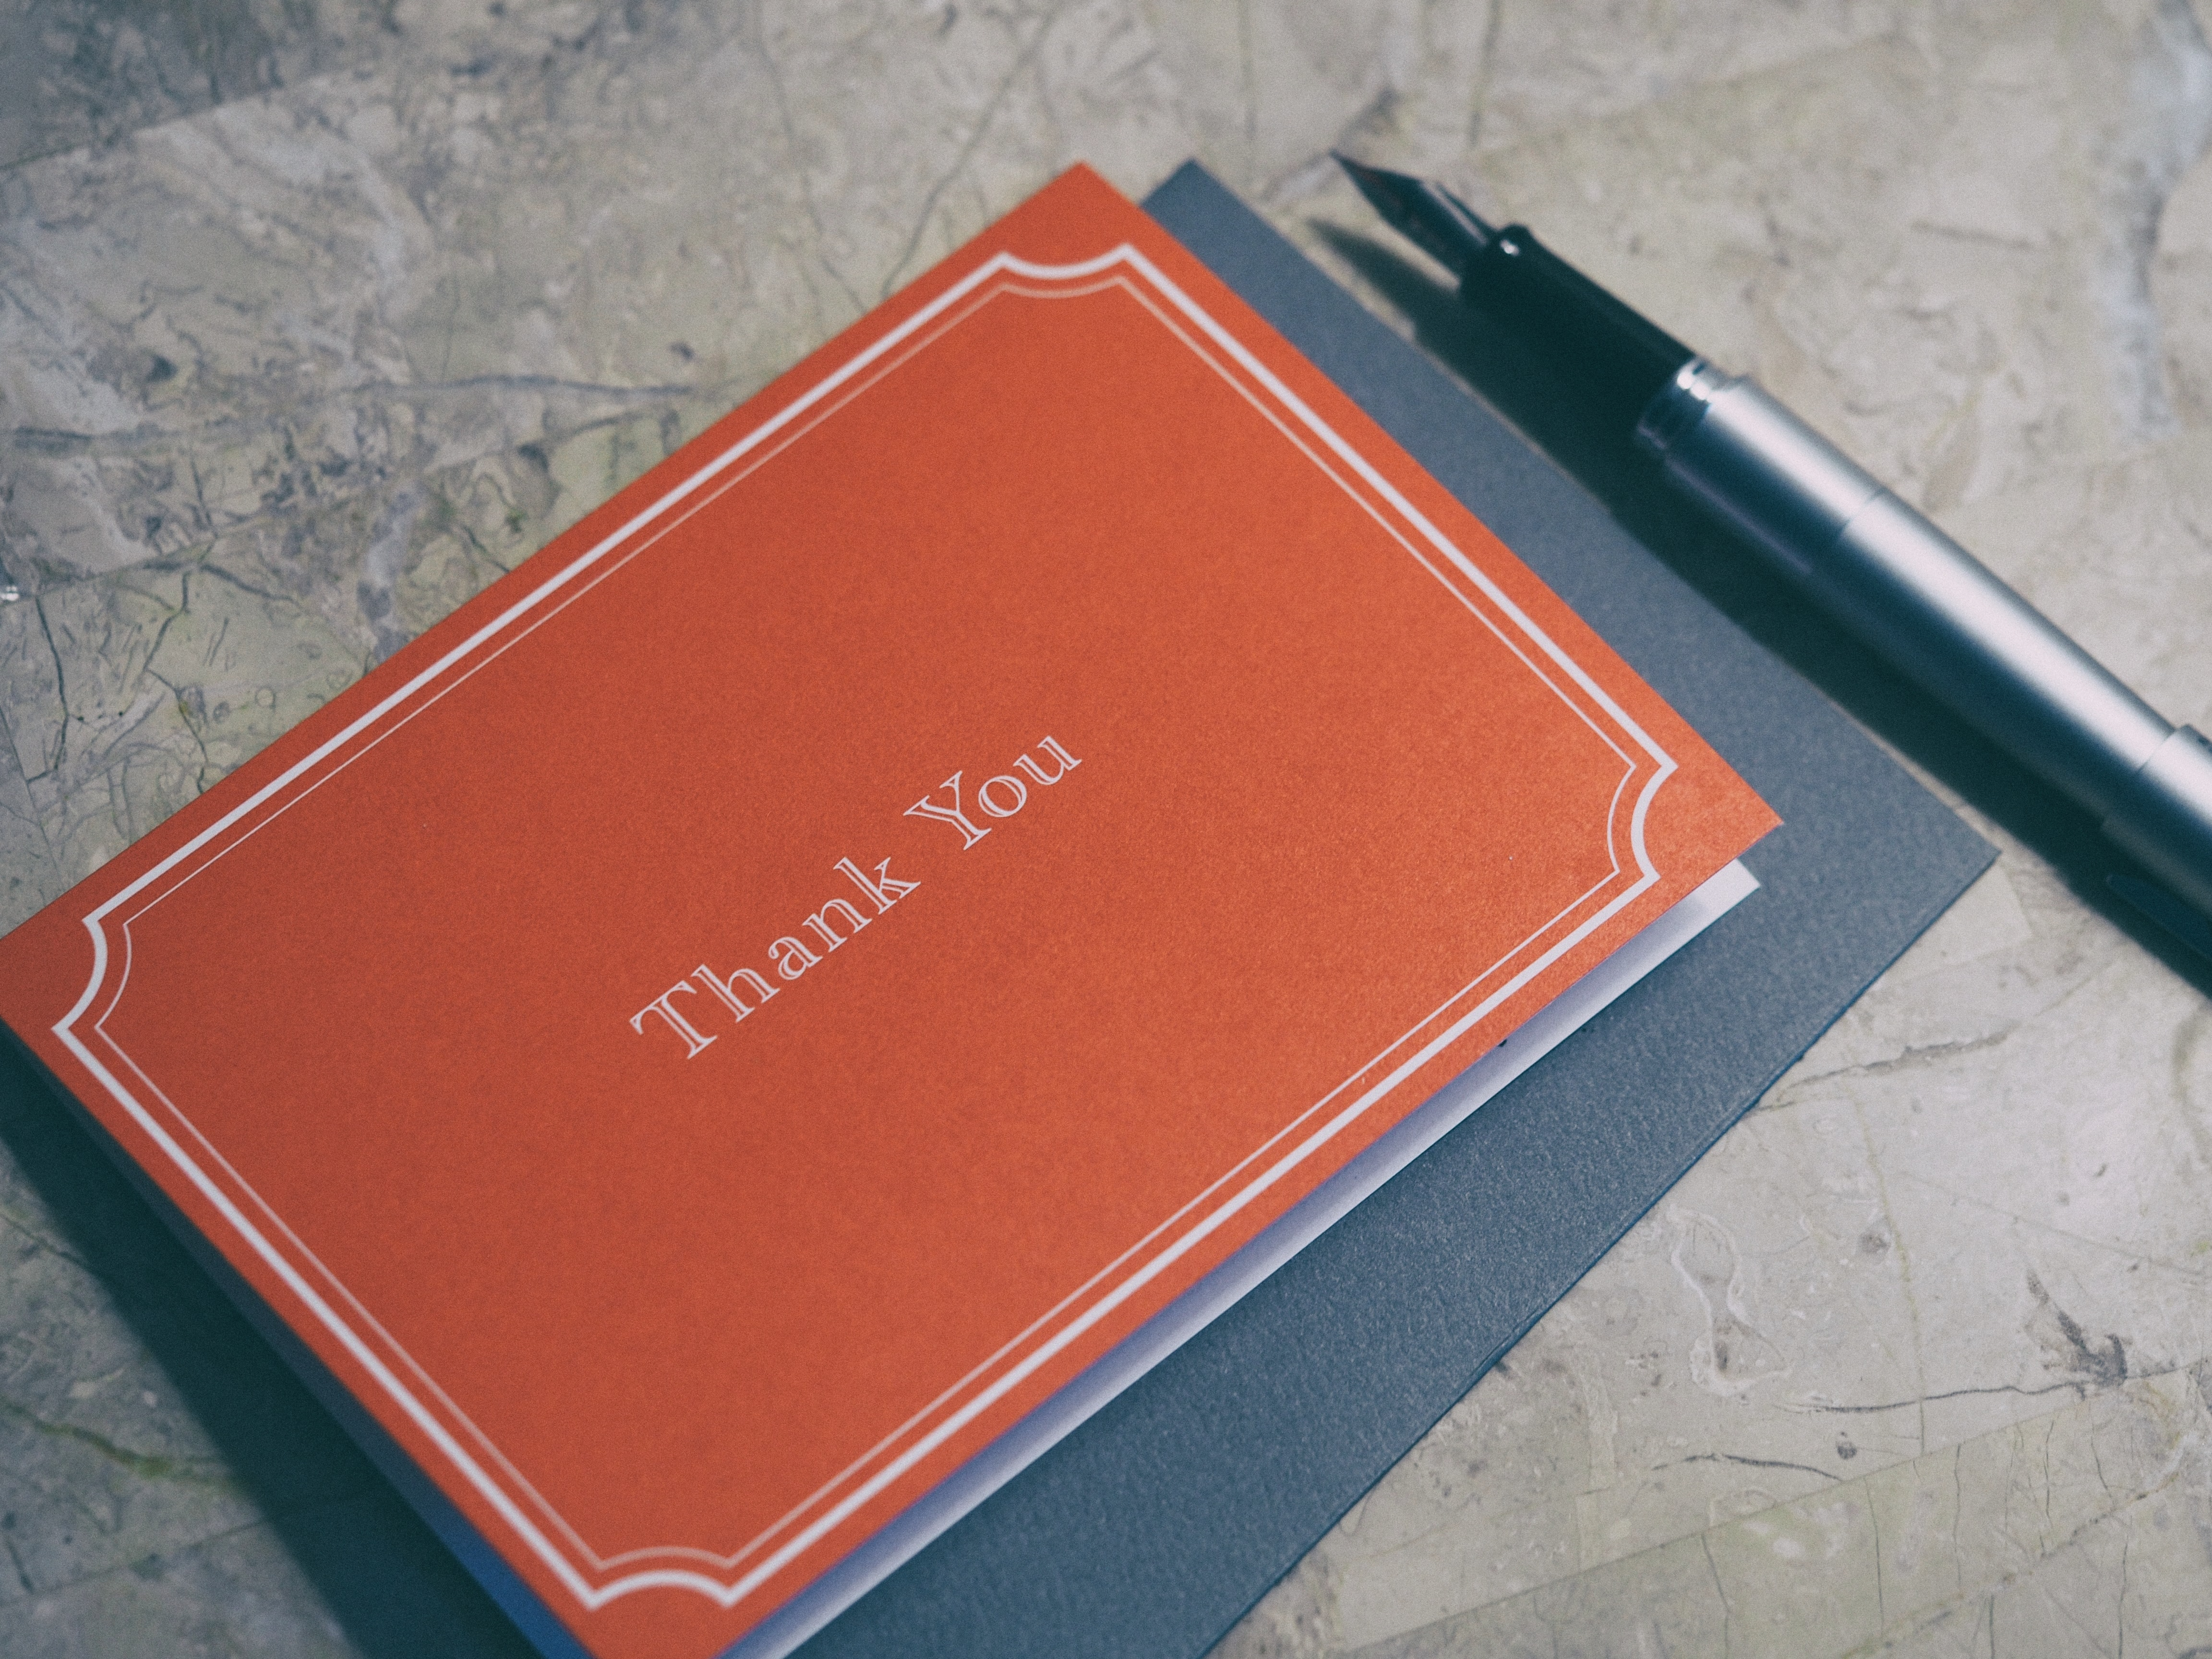 A fountain pen next to a red thank you card